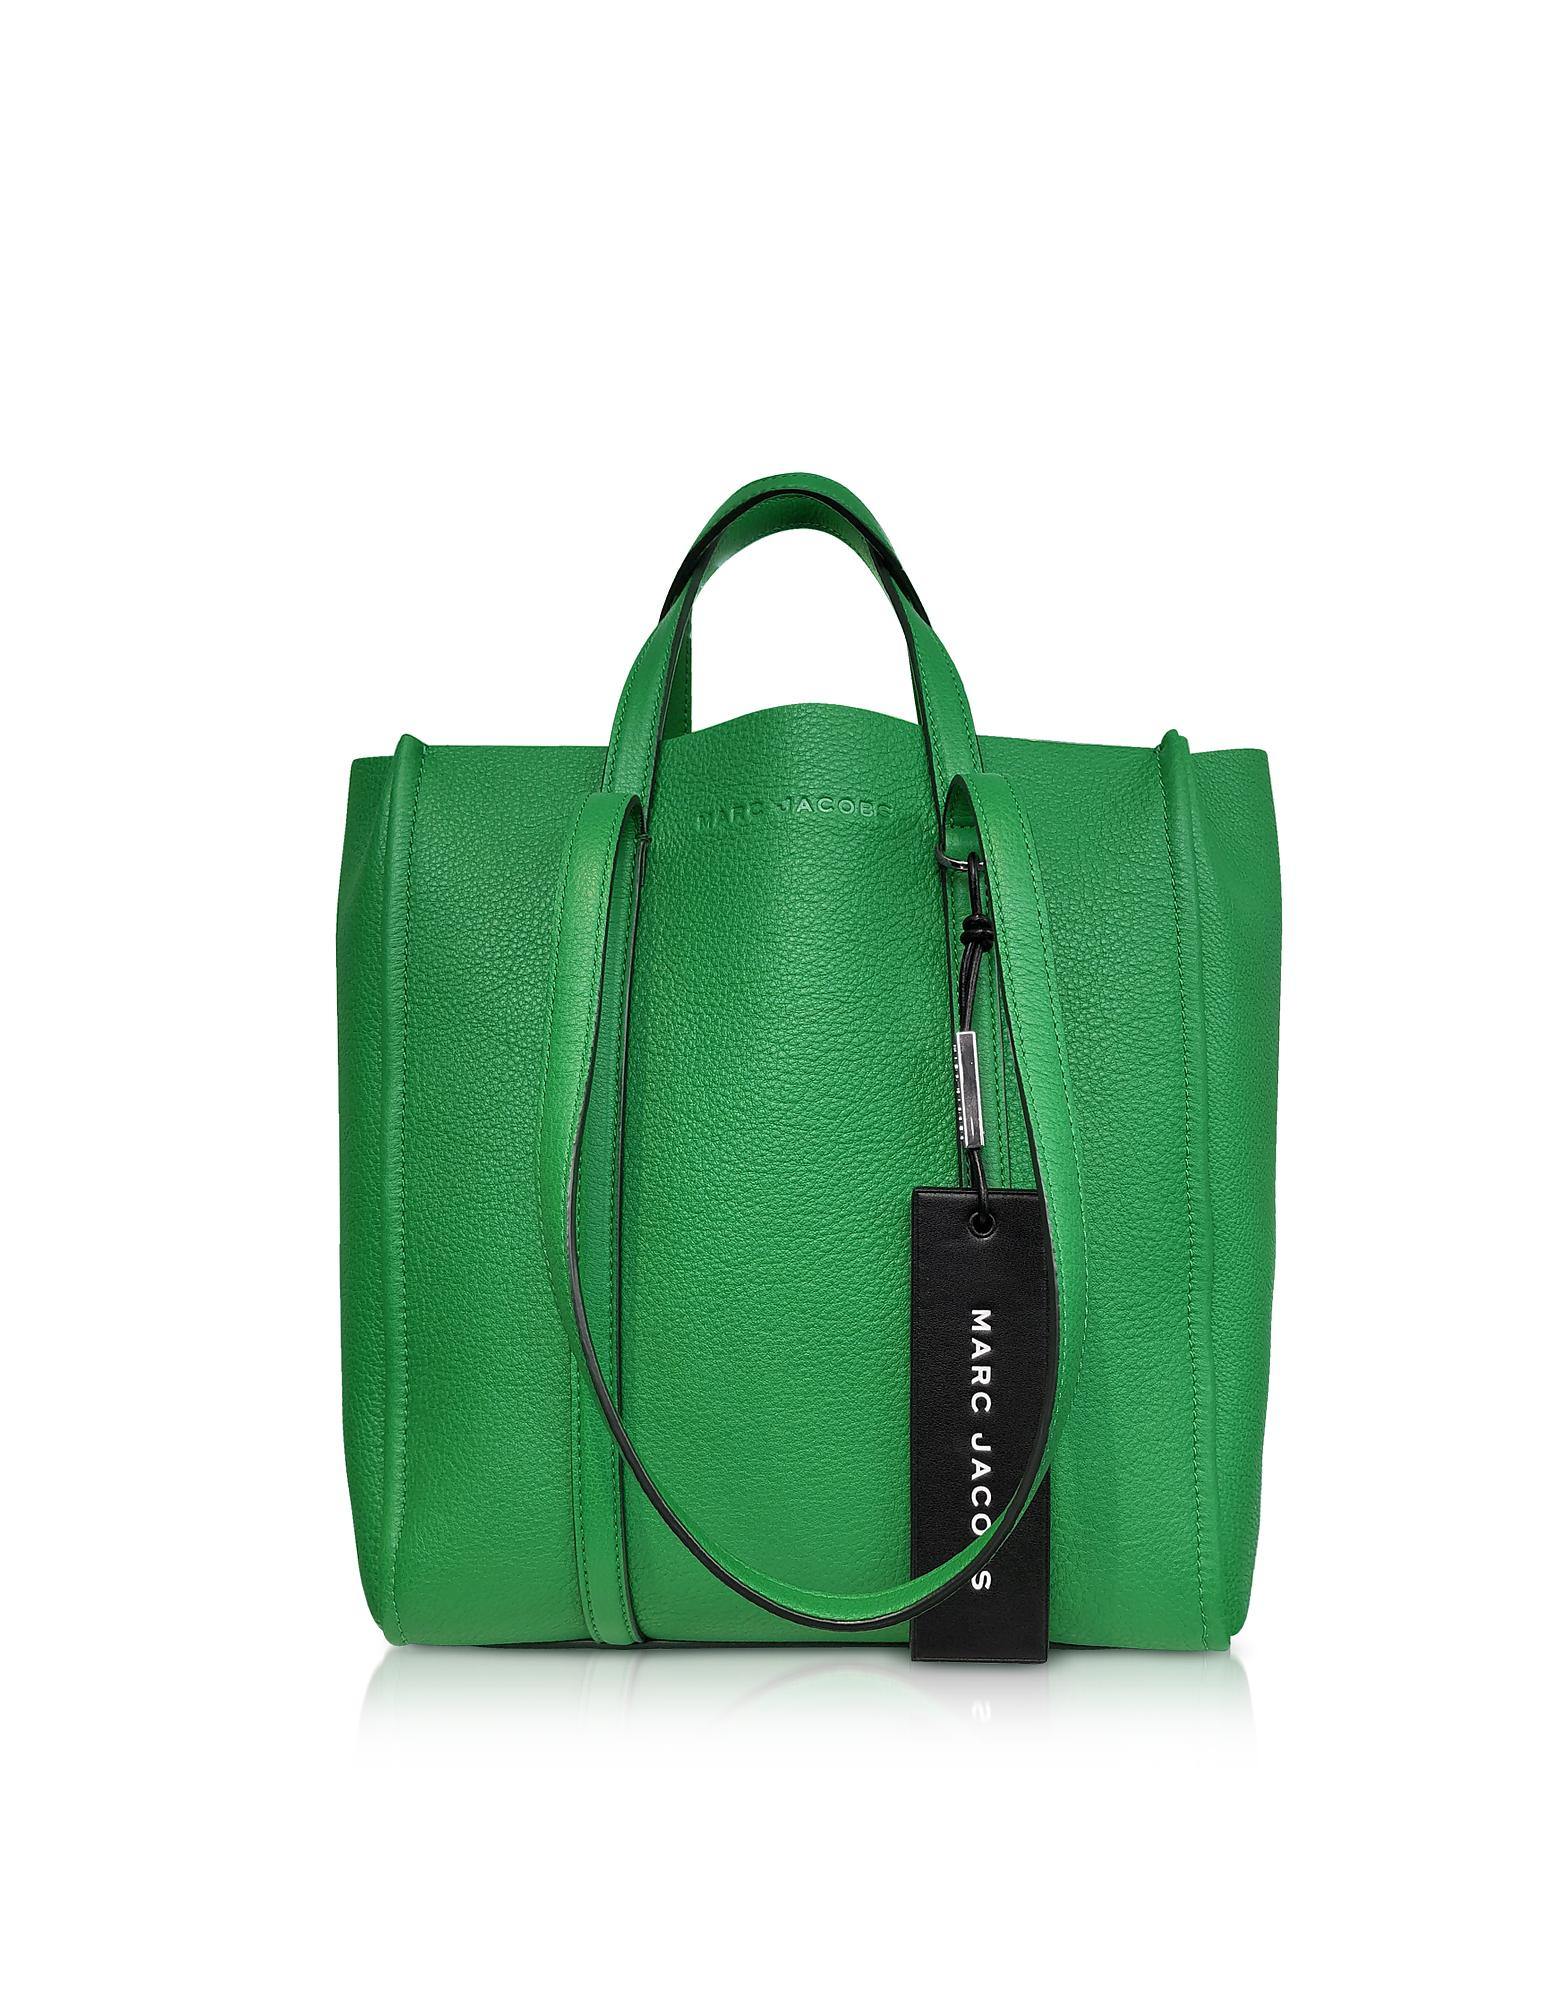 a45001028820 Marc Jacobs The Tag Tote in Green - Lyst